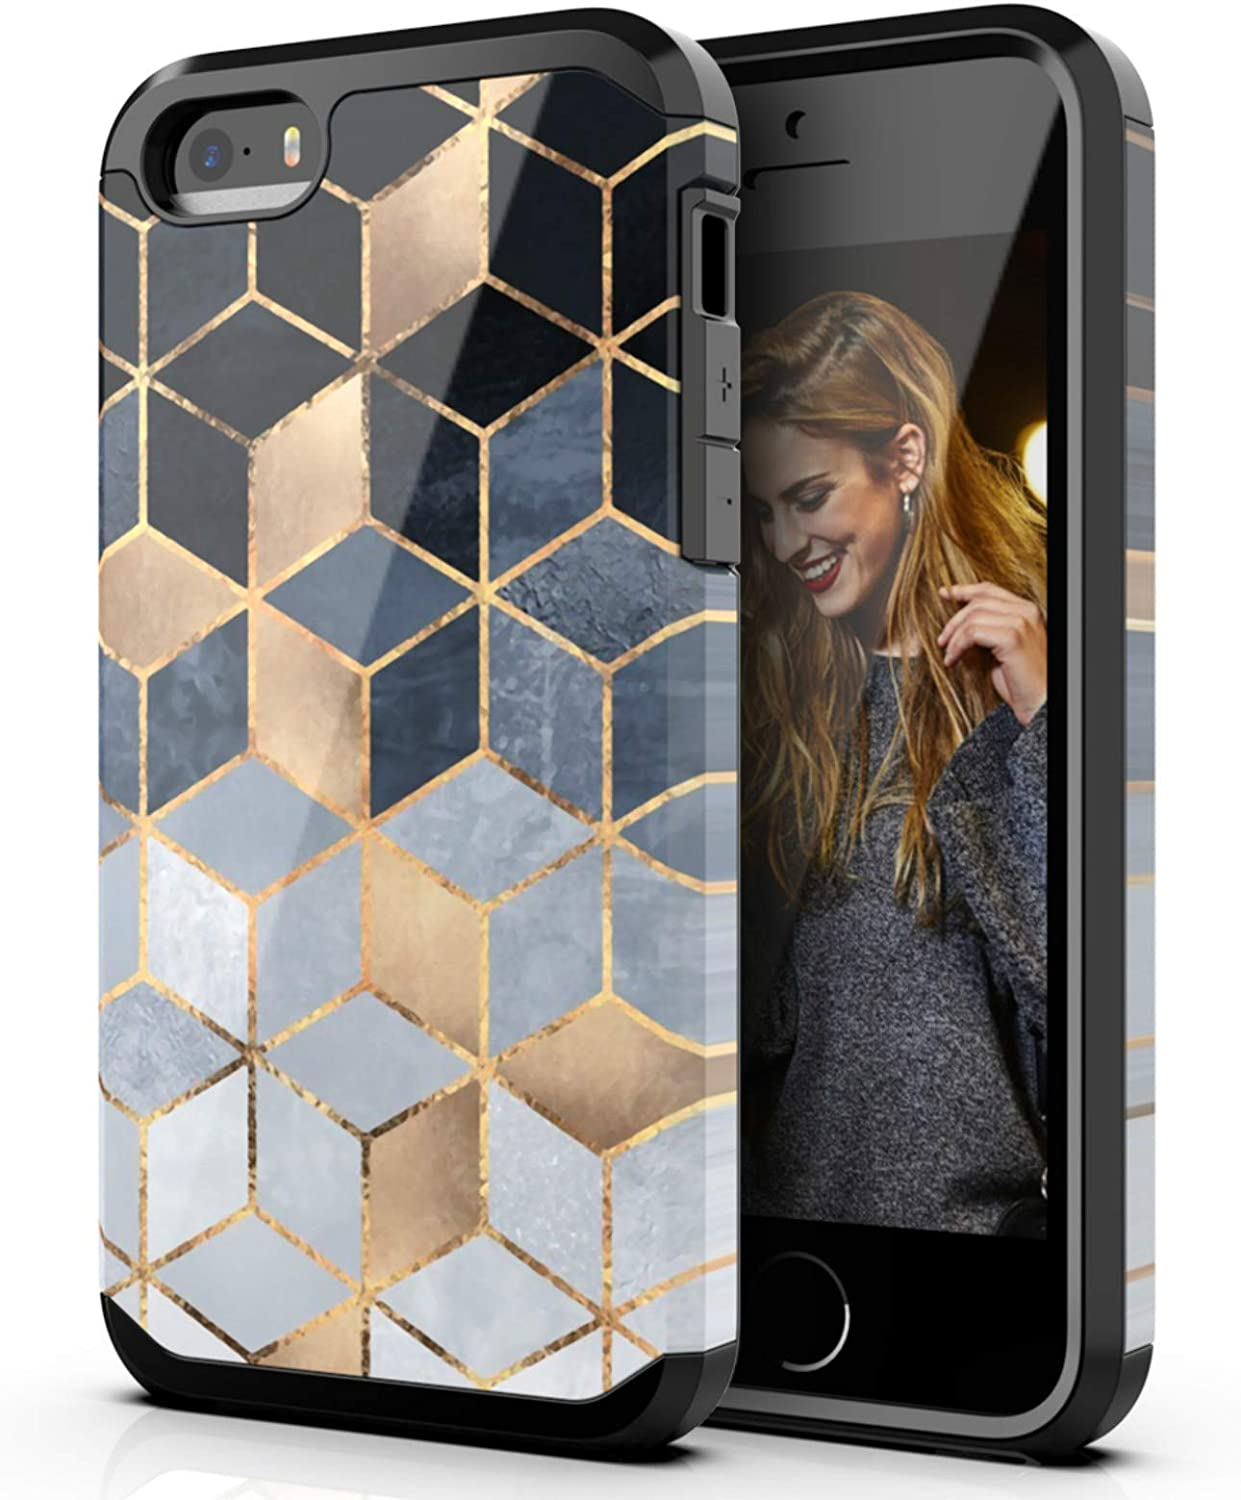 Hasaky Case for Apple iPhone SE Case,iPhone 5 Case,iPhone 5s Case,Dual Layer Hybrid Bumper Rubber Cover Marble Design Soft TPU & Hard Back Protective Shockproof Case for Apple iPhone 5/5s/SE - Black.